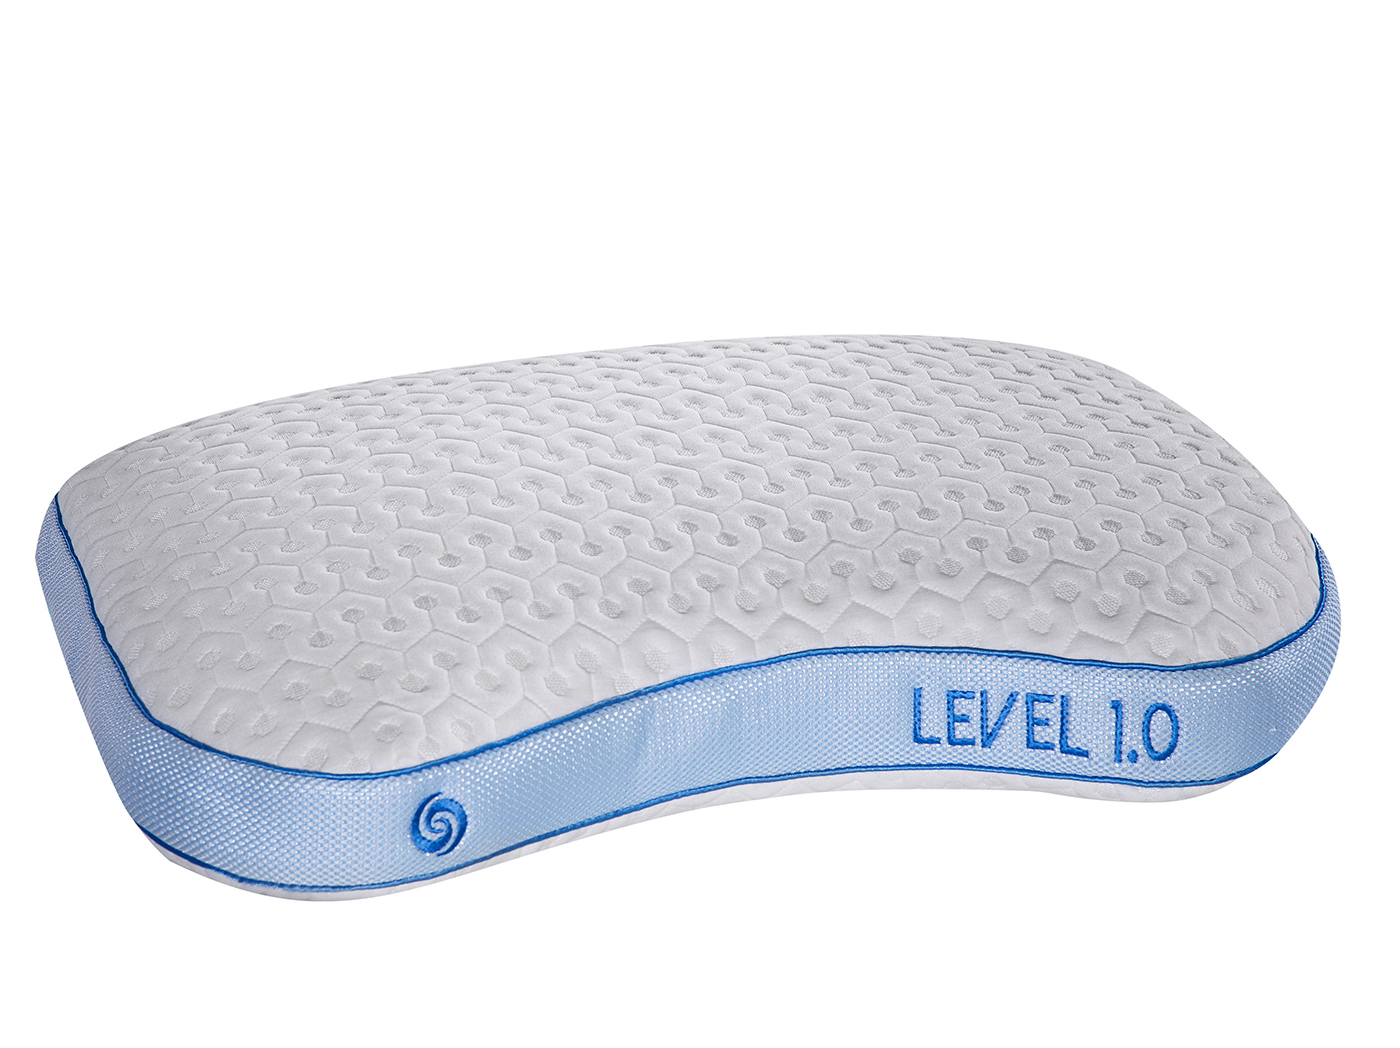 Level 1.0 Personal Pillow